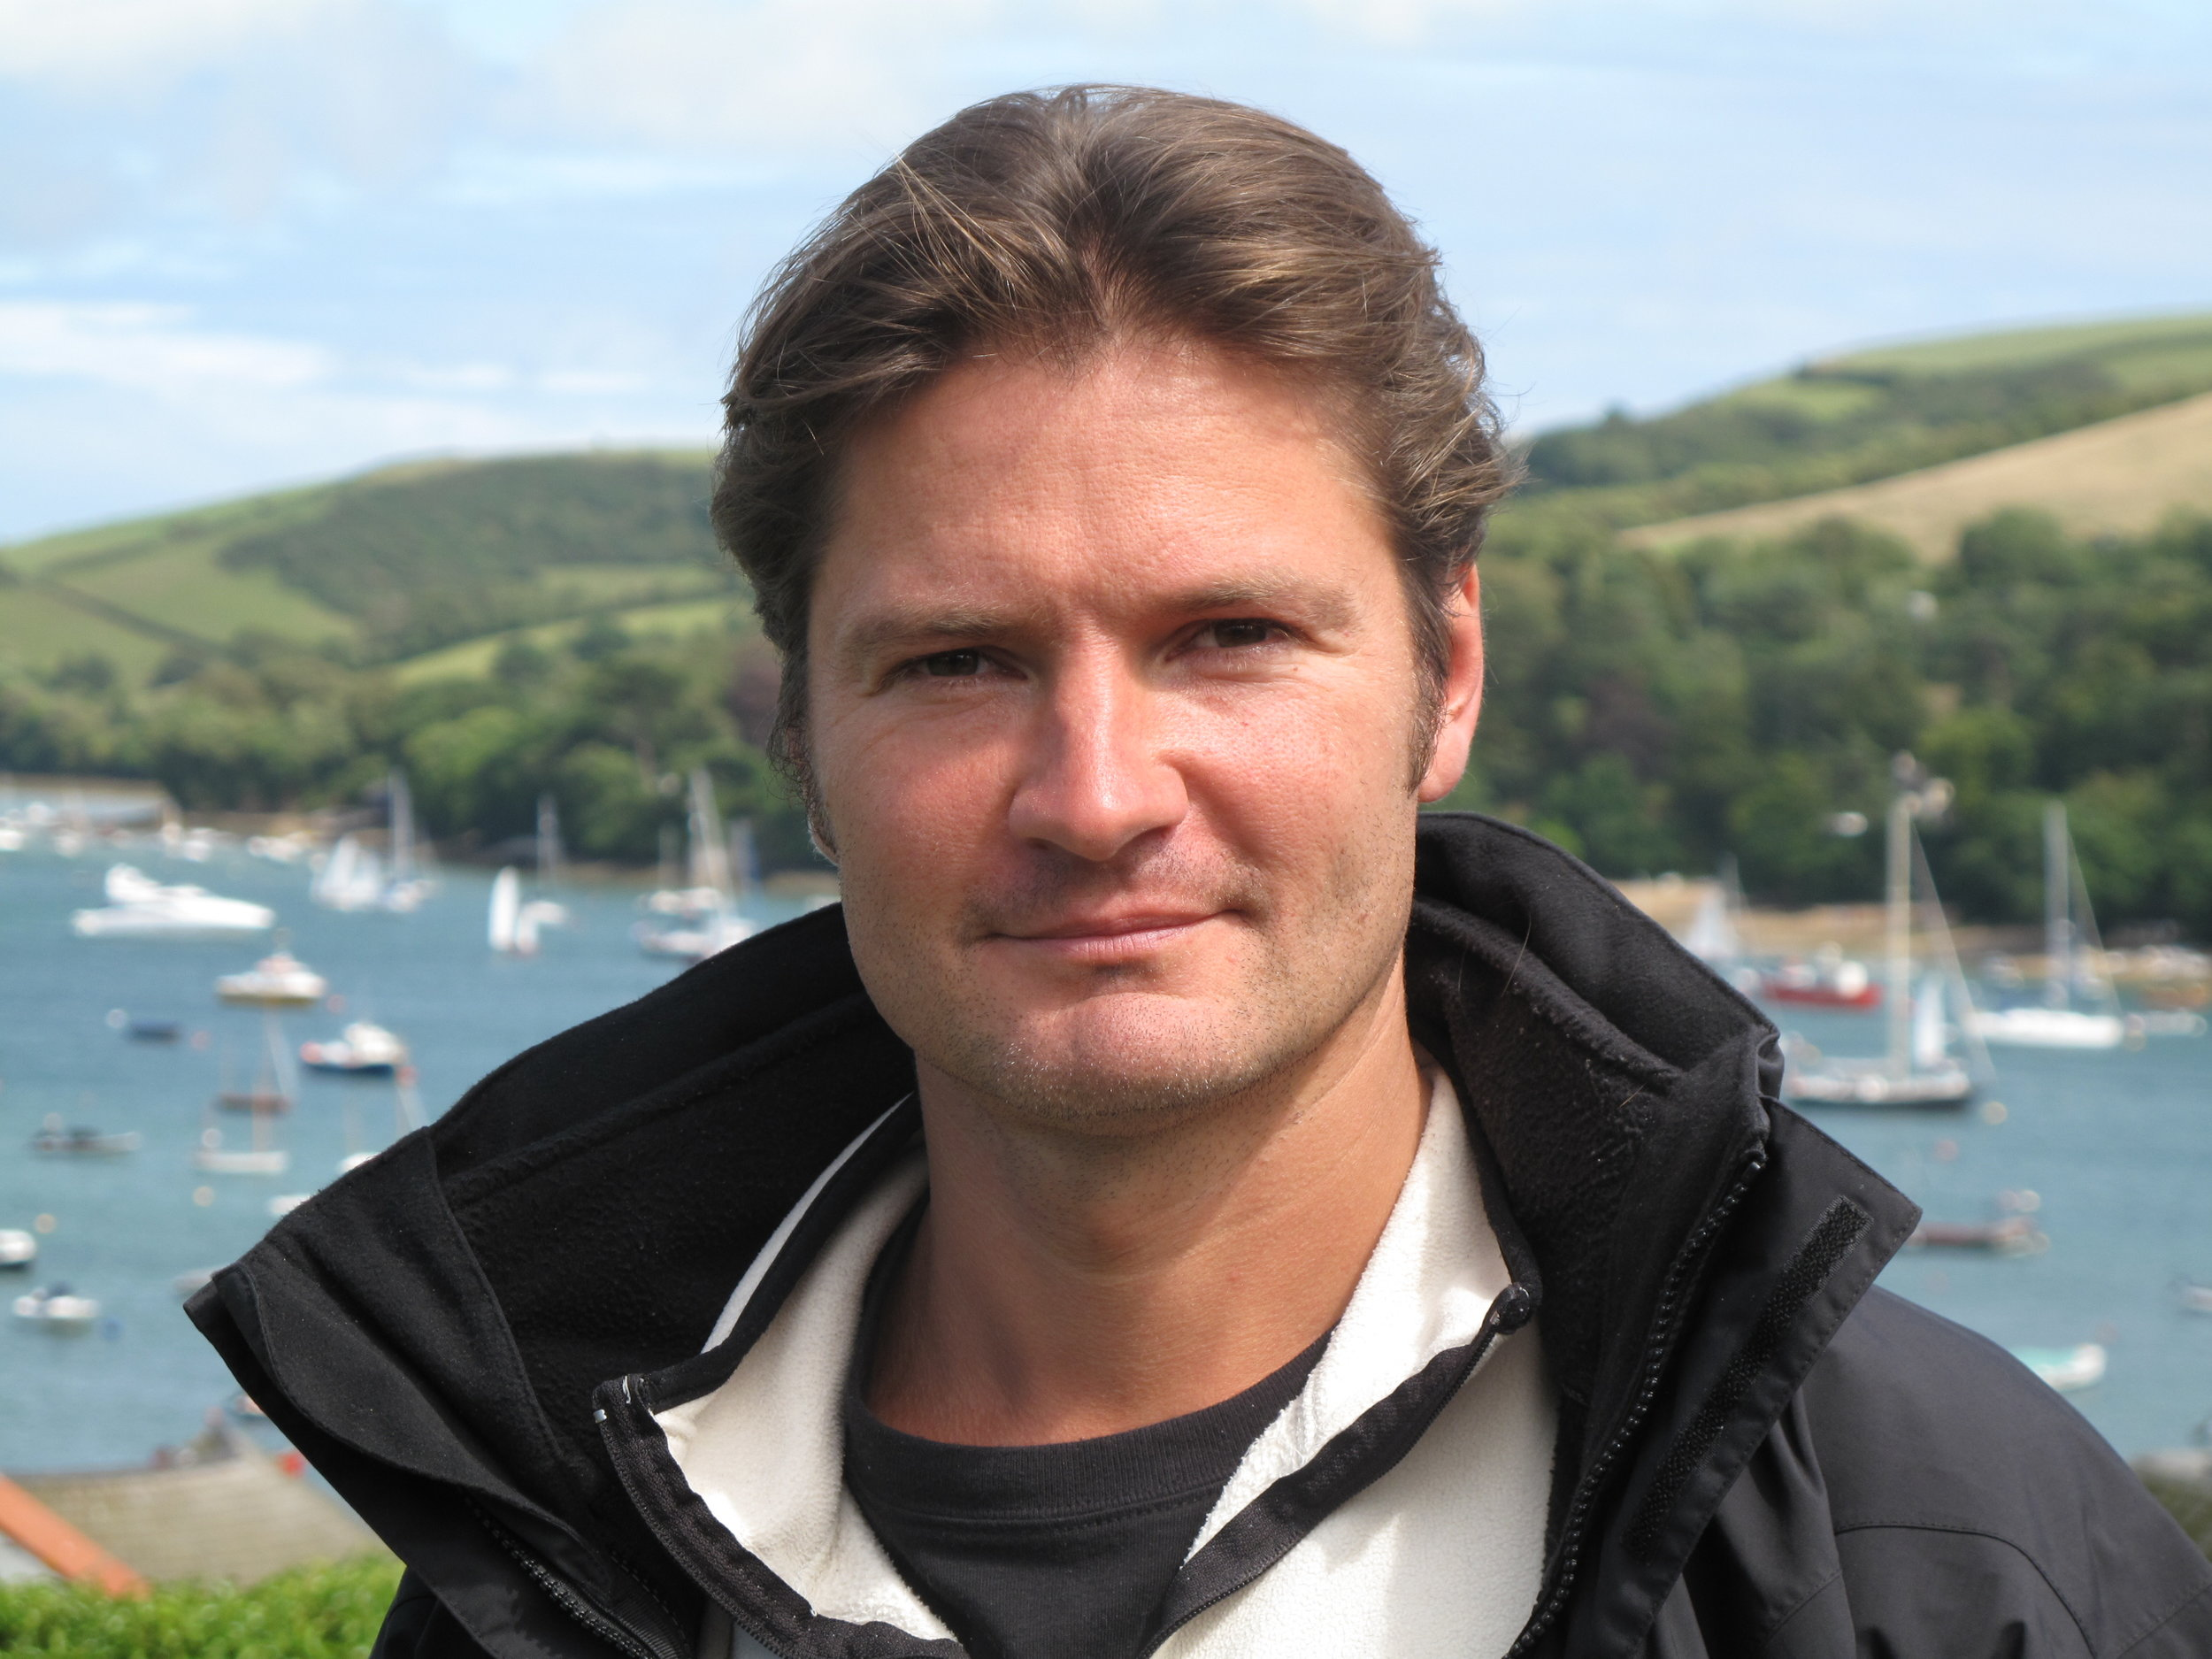 Giles Hutchins is a senior executive adviser, coach, thought leader and author on living-systems, systems-thinking, biomimicry, leadership nature-immersions, regenerative and agile leadership. Giles has spent over two decades in business specialising in business transformation and over a decade specialising in the application of living-system/nature insights to organisational development and leadership development. He is  Chairman of The Future Fit leadership Academy,   co-founder of Regenerators and co-founder of Biomimicry for Creative Innovation.   Giles Hutchins is an experienced leadership-immersion facilitator, who facilitates out-door leadership nature-immersions for leadership teams, senior executives and management teams. Formerly, senior executive and  Business Transformation specialist with KPMG, and Global Head of Sustainable Business for Atos Origin , and author of three specialist books, he is a pioneer in exploring and embodying the 'new norm' of leadership and organisational development required in this agile age.